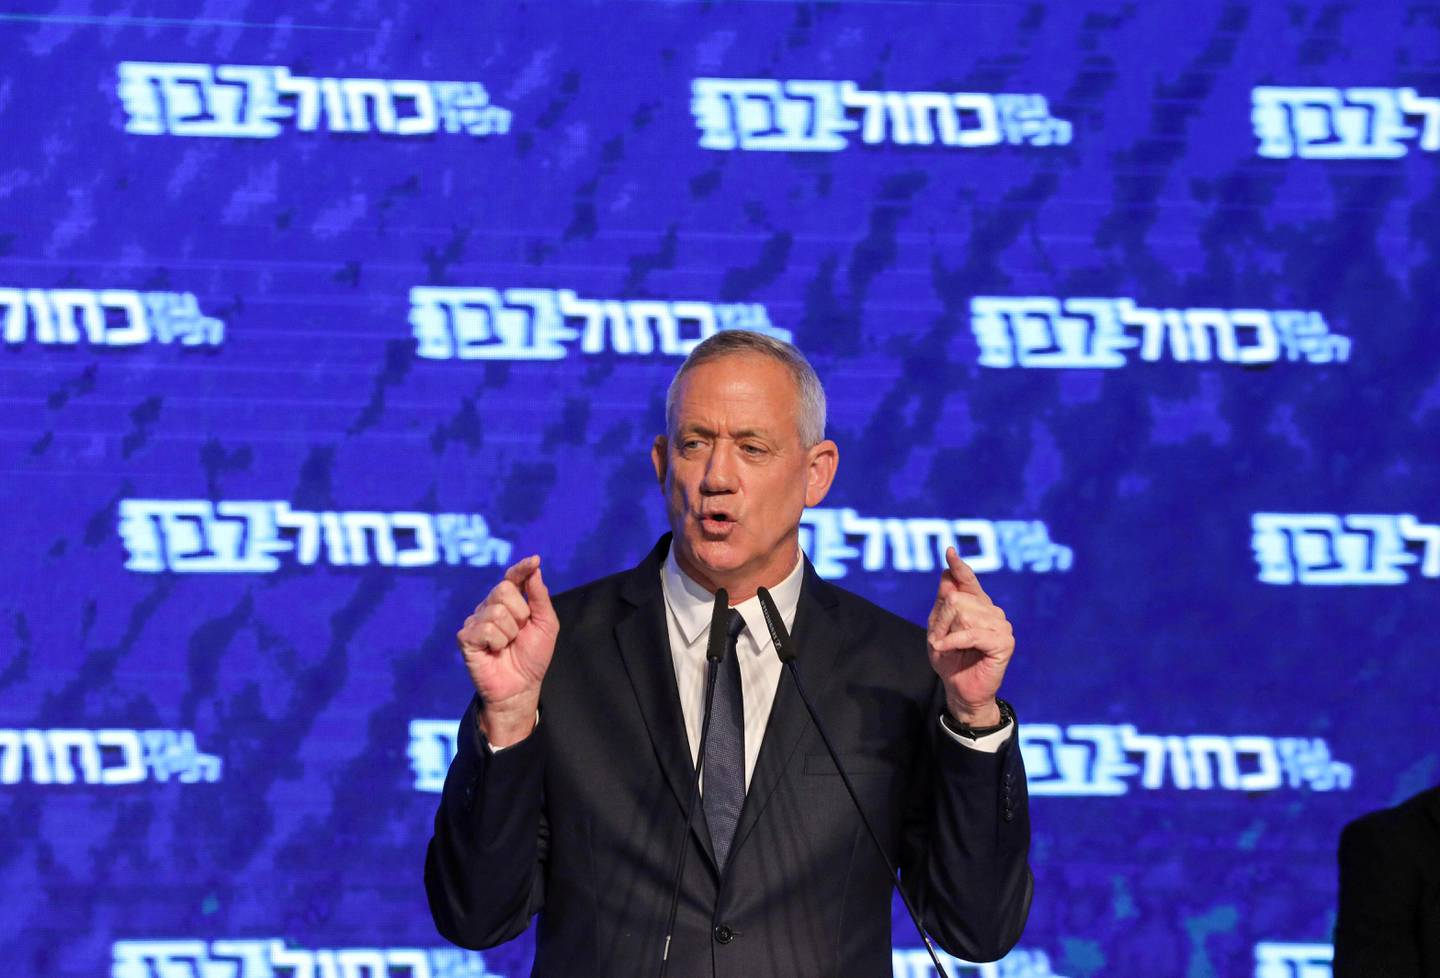 Retired Israeli general Benny Gantz, one of the leaders of the Blue and White (Kahol Lavan) political alliance, speaks before supporters at the alliance headquarters in Tel Aviv on April 10, 2019. (Photo by GALI TIBBON / AFP)